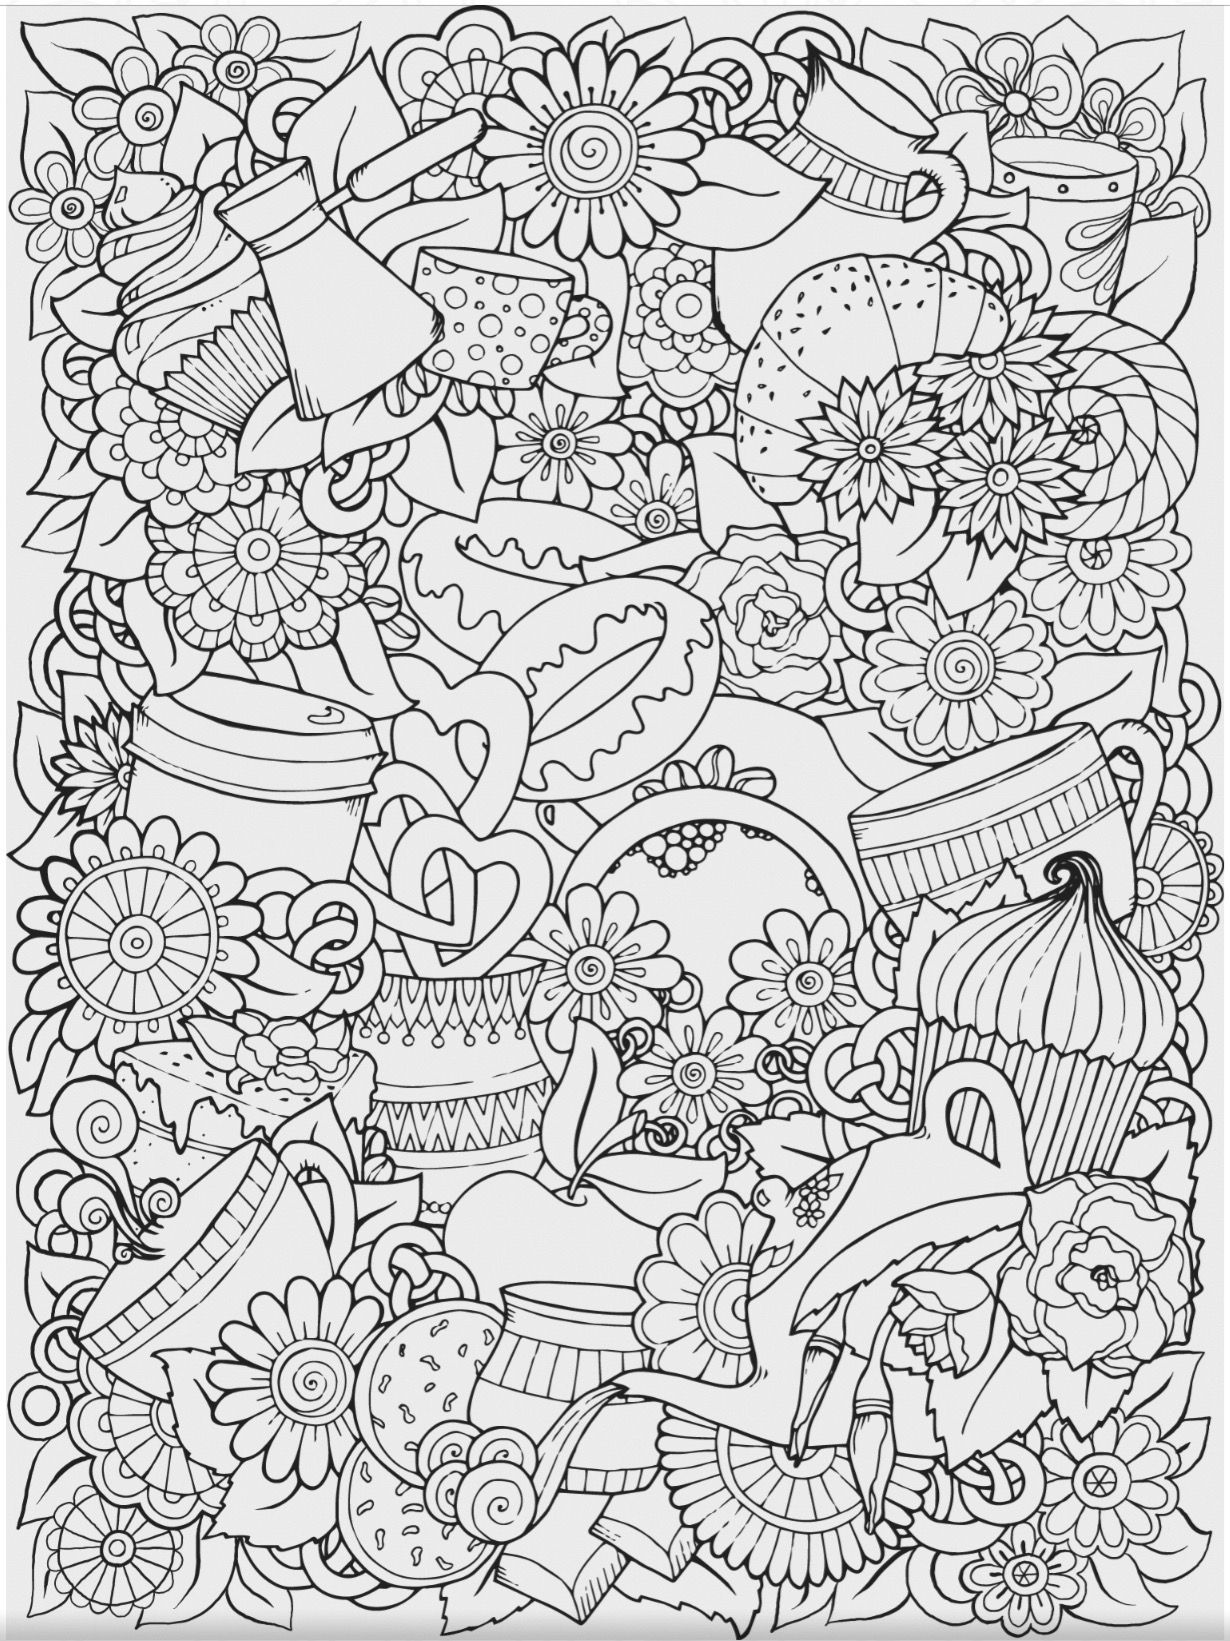 Pin By Carol Ratliff On Coloring! X5